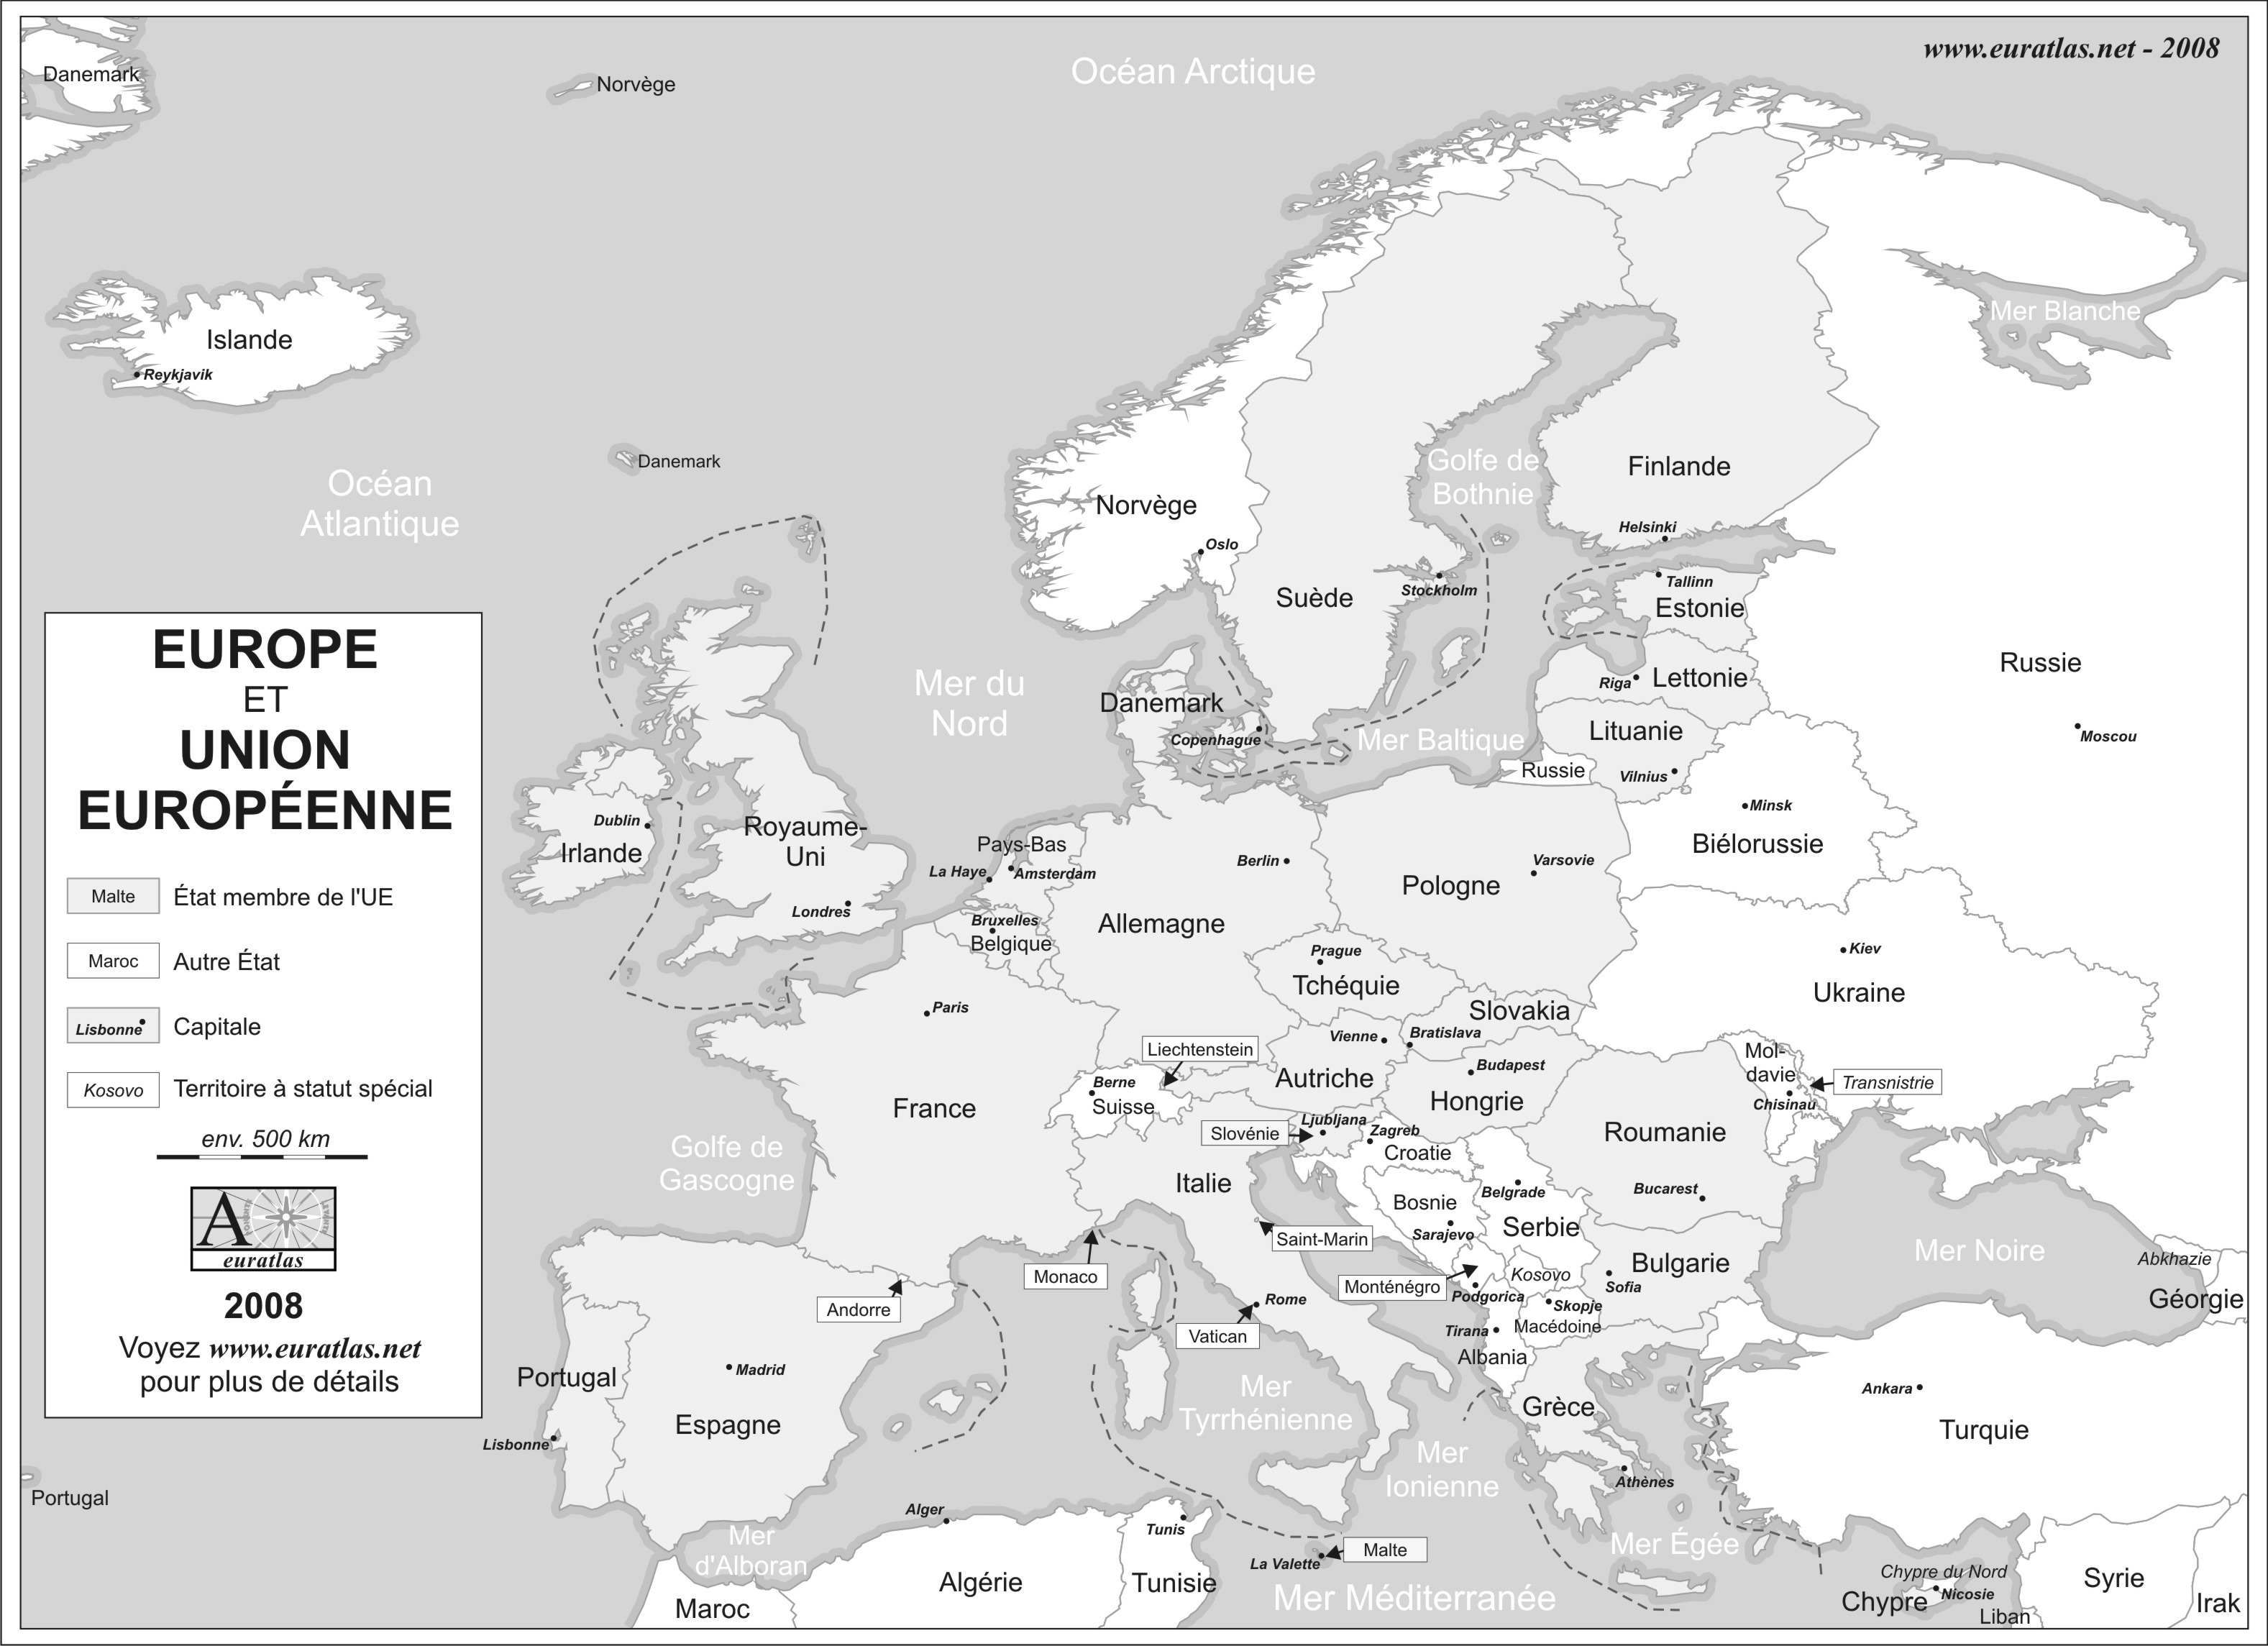 Carte Union Europe Vierge.Euratlas Info Europe Et Union Europeenne 2008 En Niveaux De